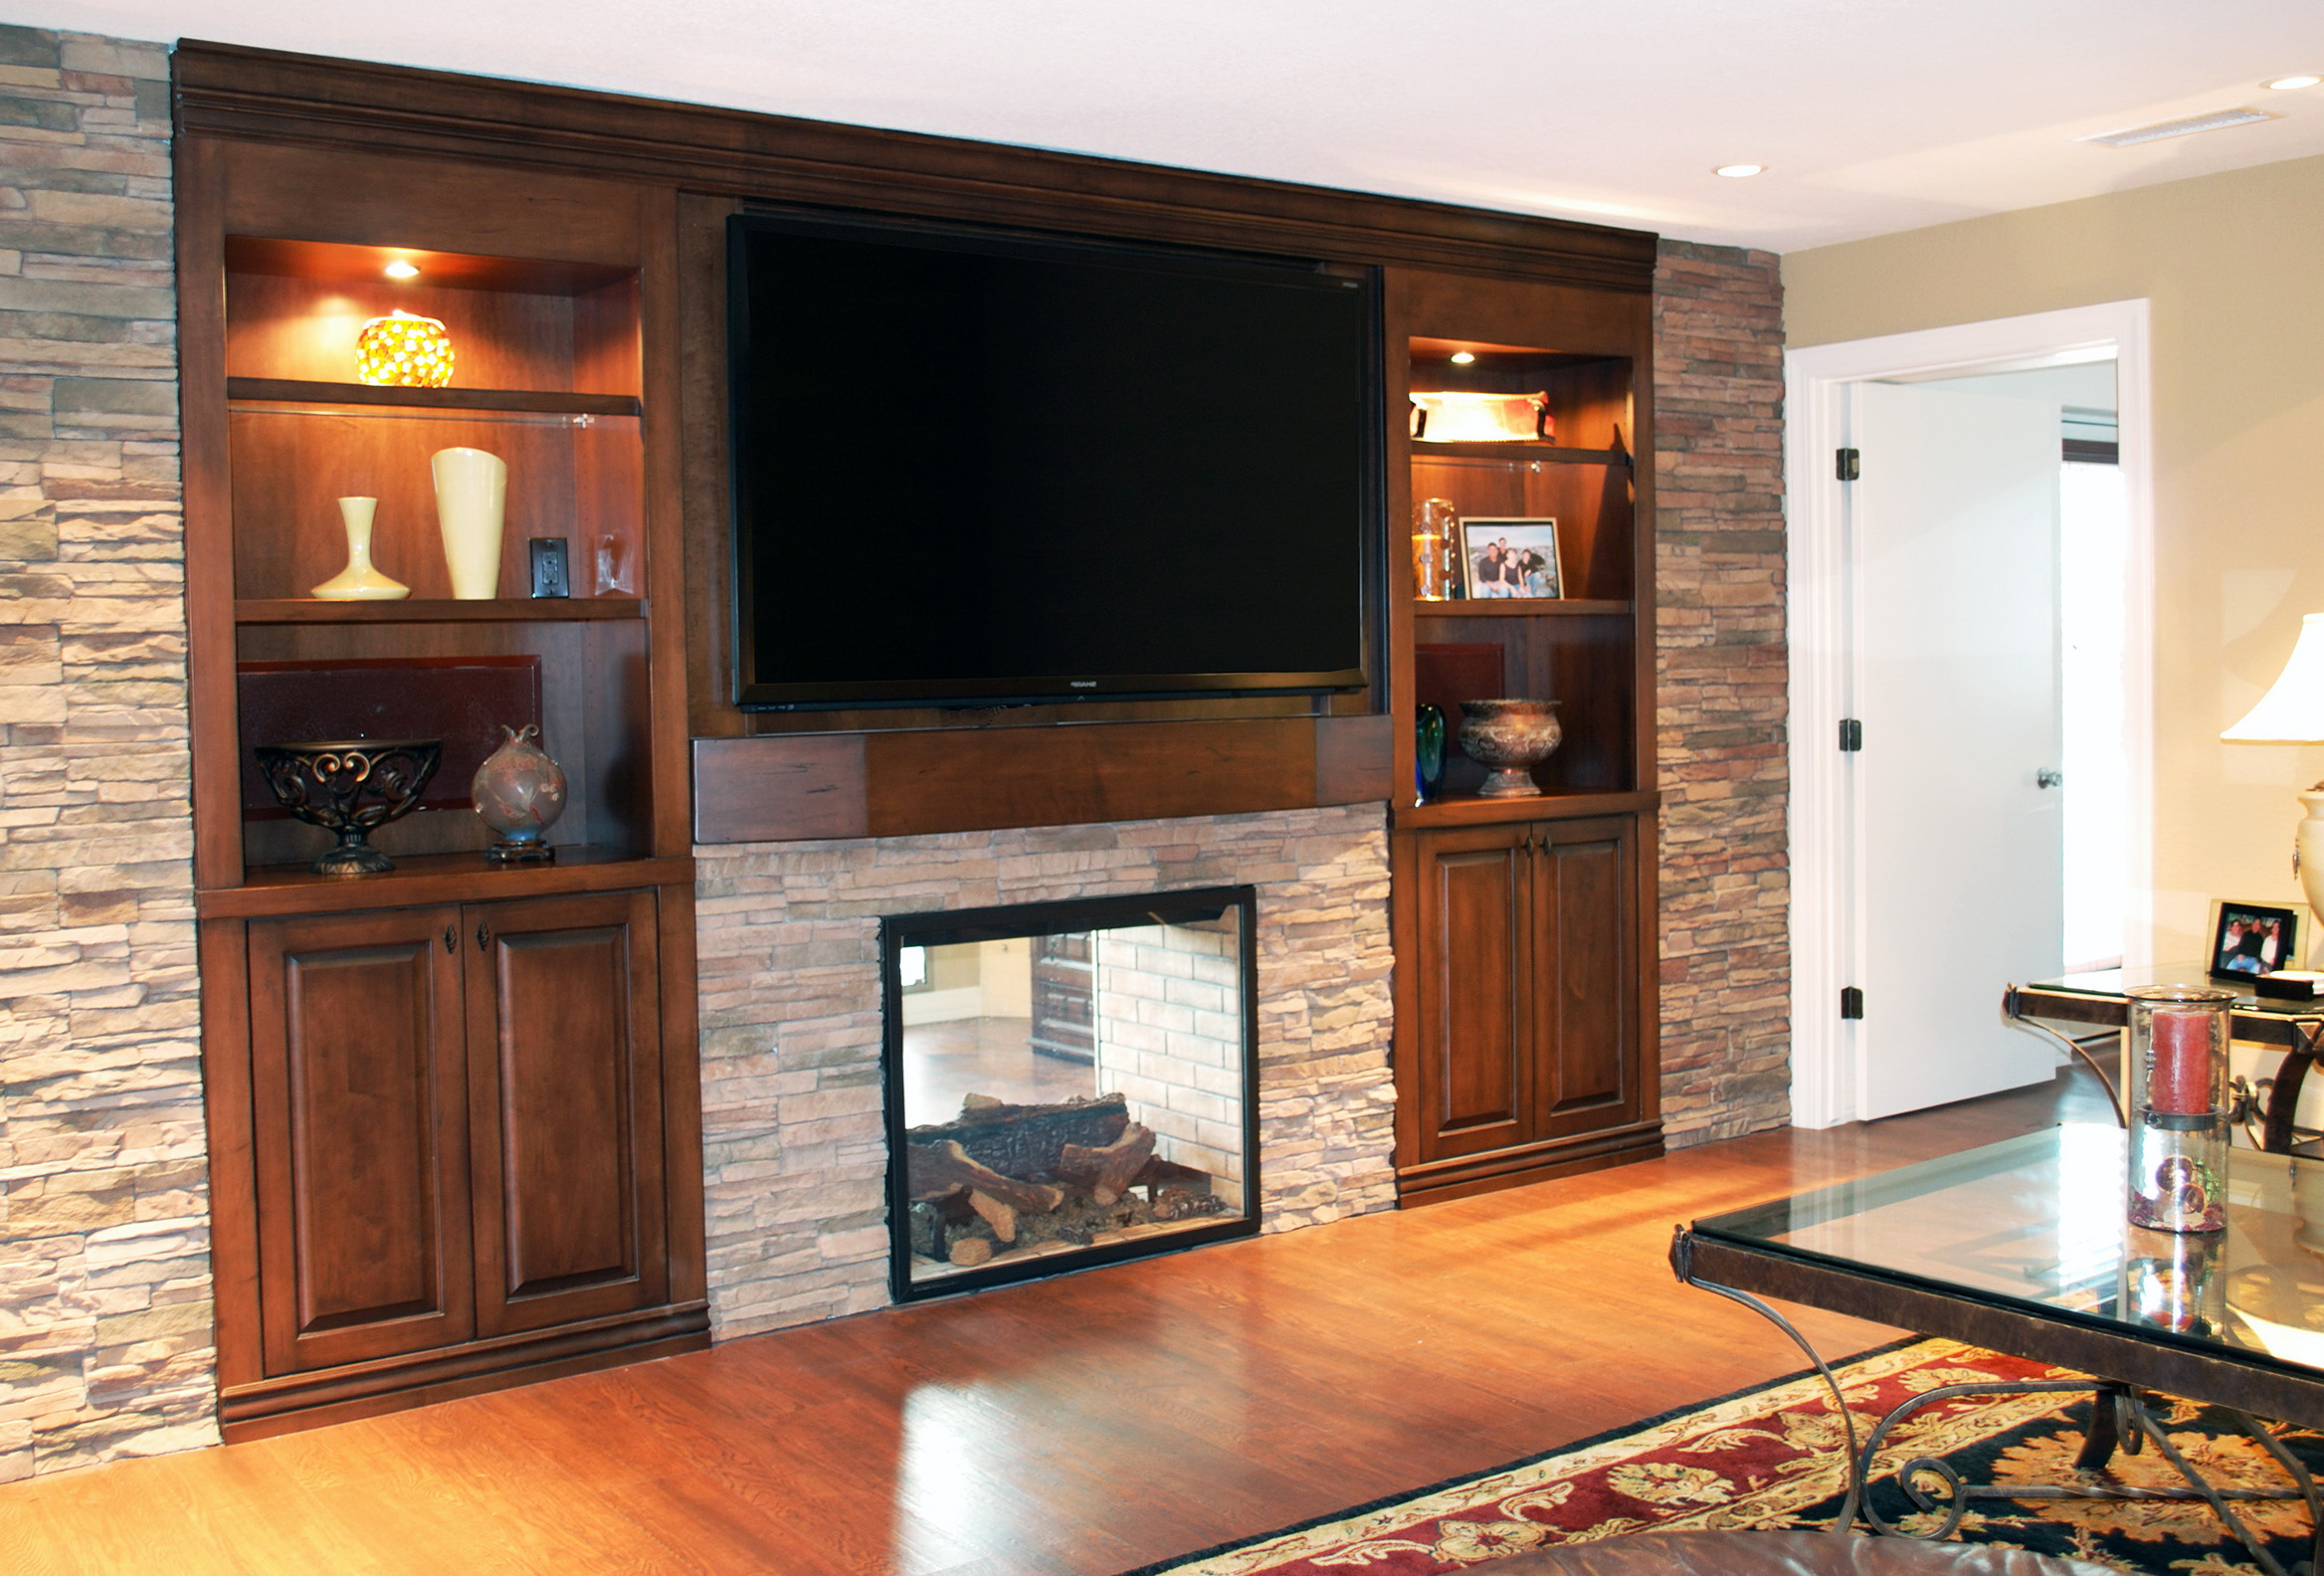 Built In Entertainment Center With Fireplace Ideas   Home Design Ideas